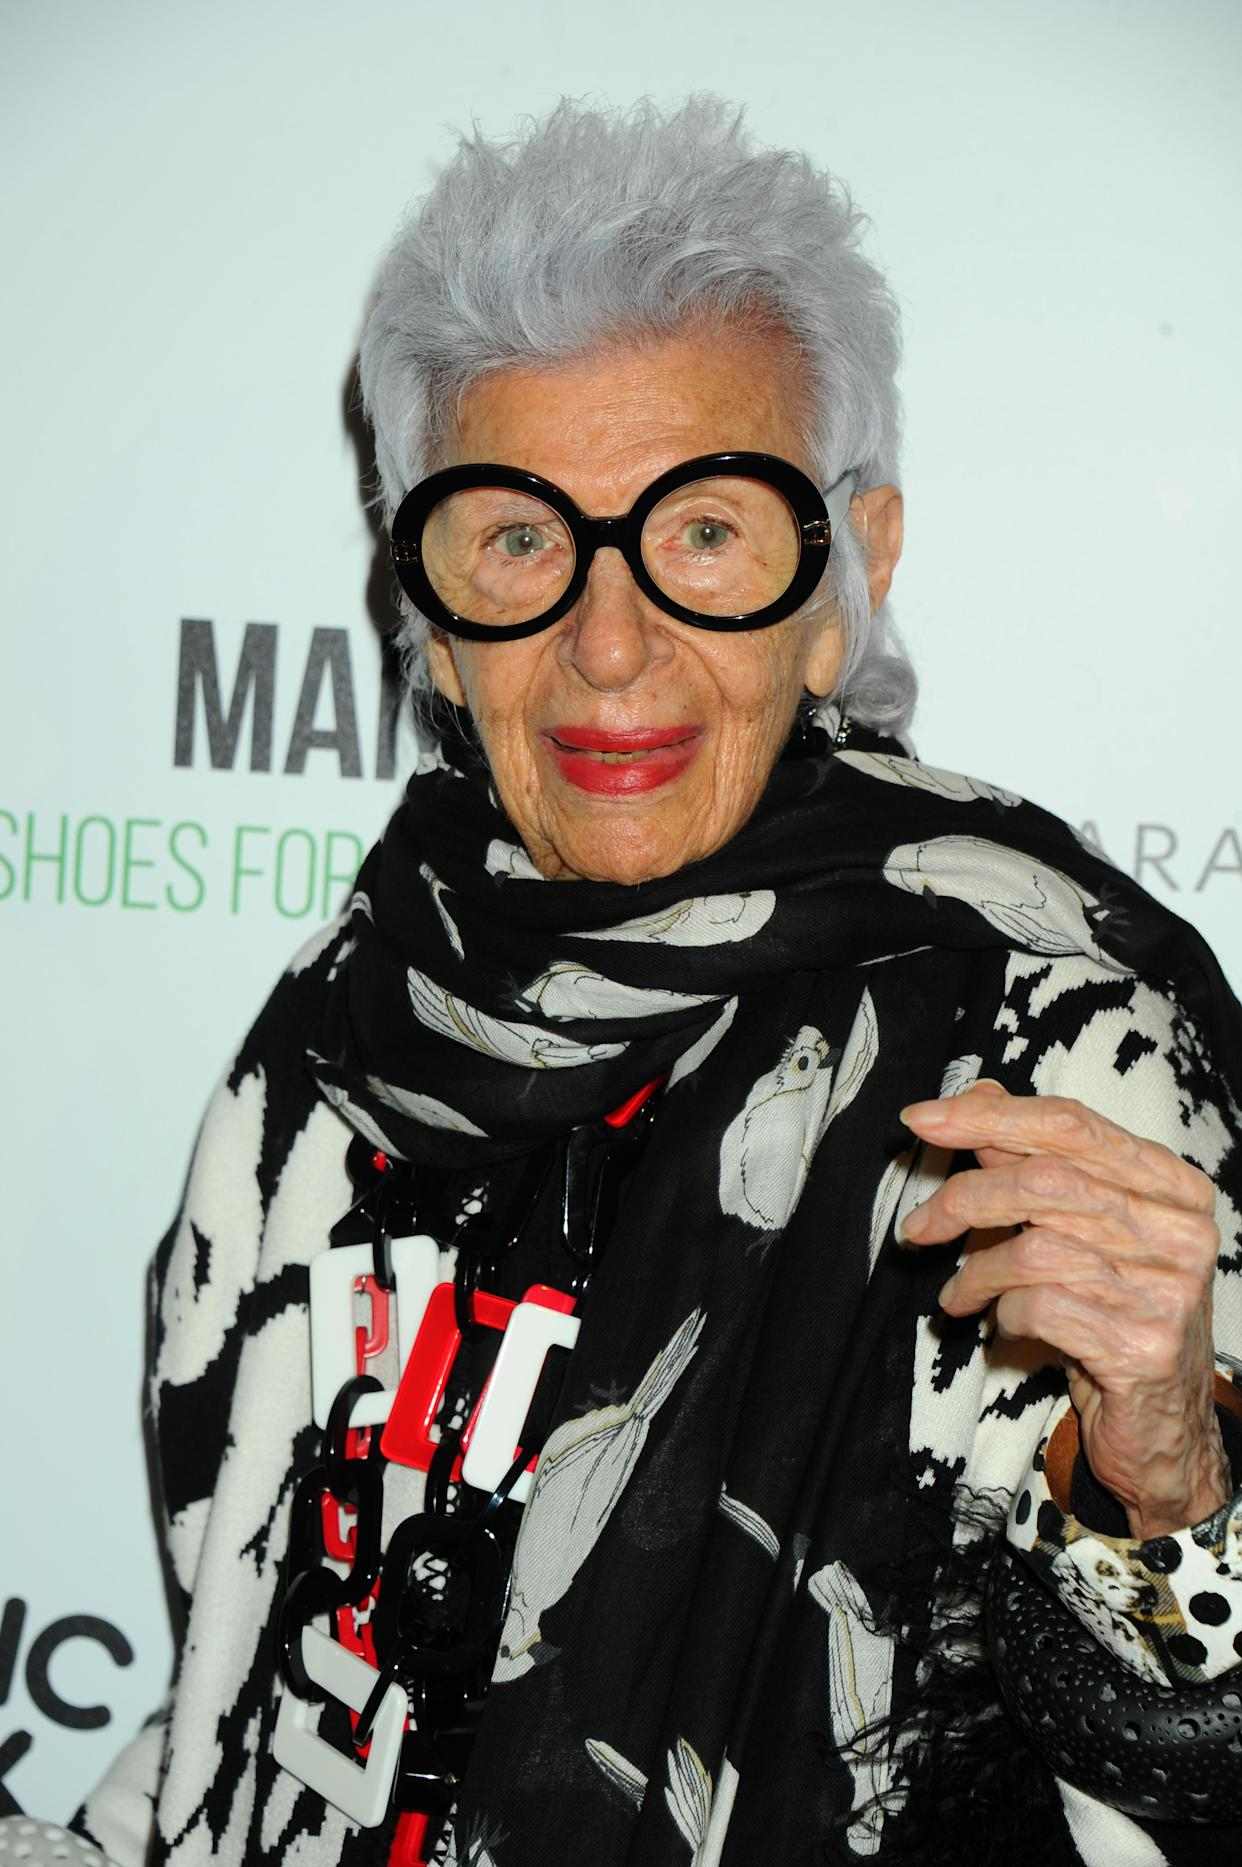 Iris Apfel attends the Manolo: The Boy Who Made Shoes for Lizards New York Premiere, held at The Frick Collection in New York, NY on September 14, 2017. (Photo by Elise Leclerc)